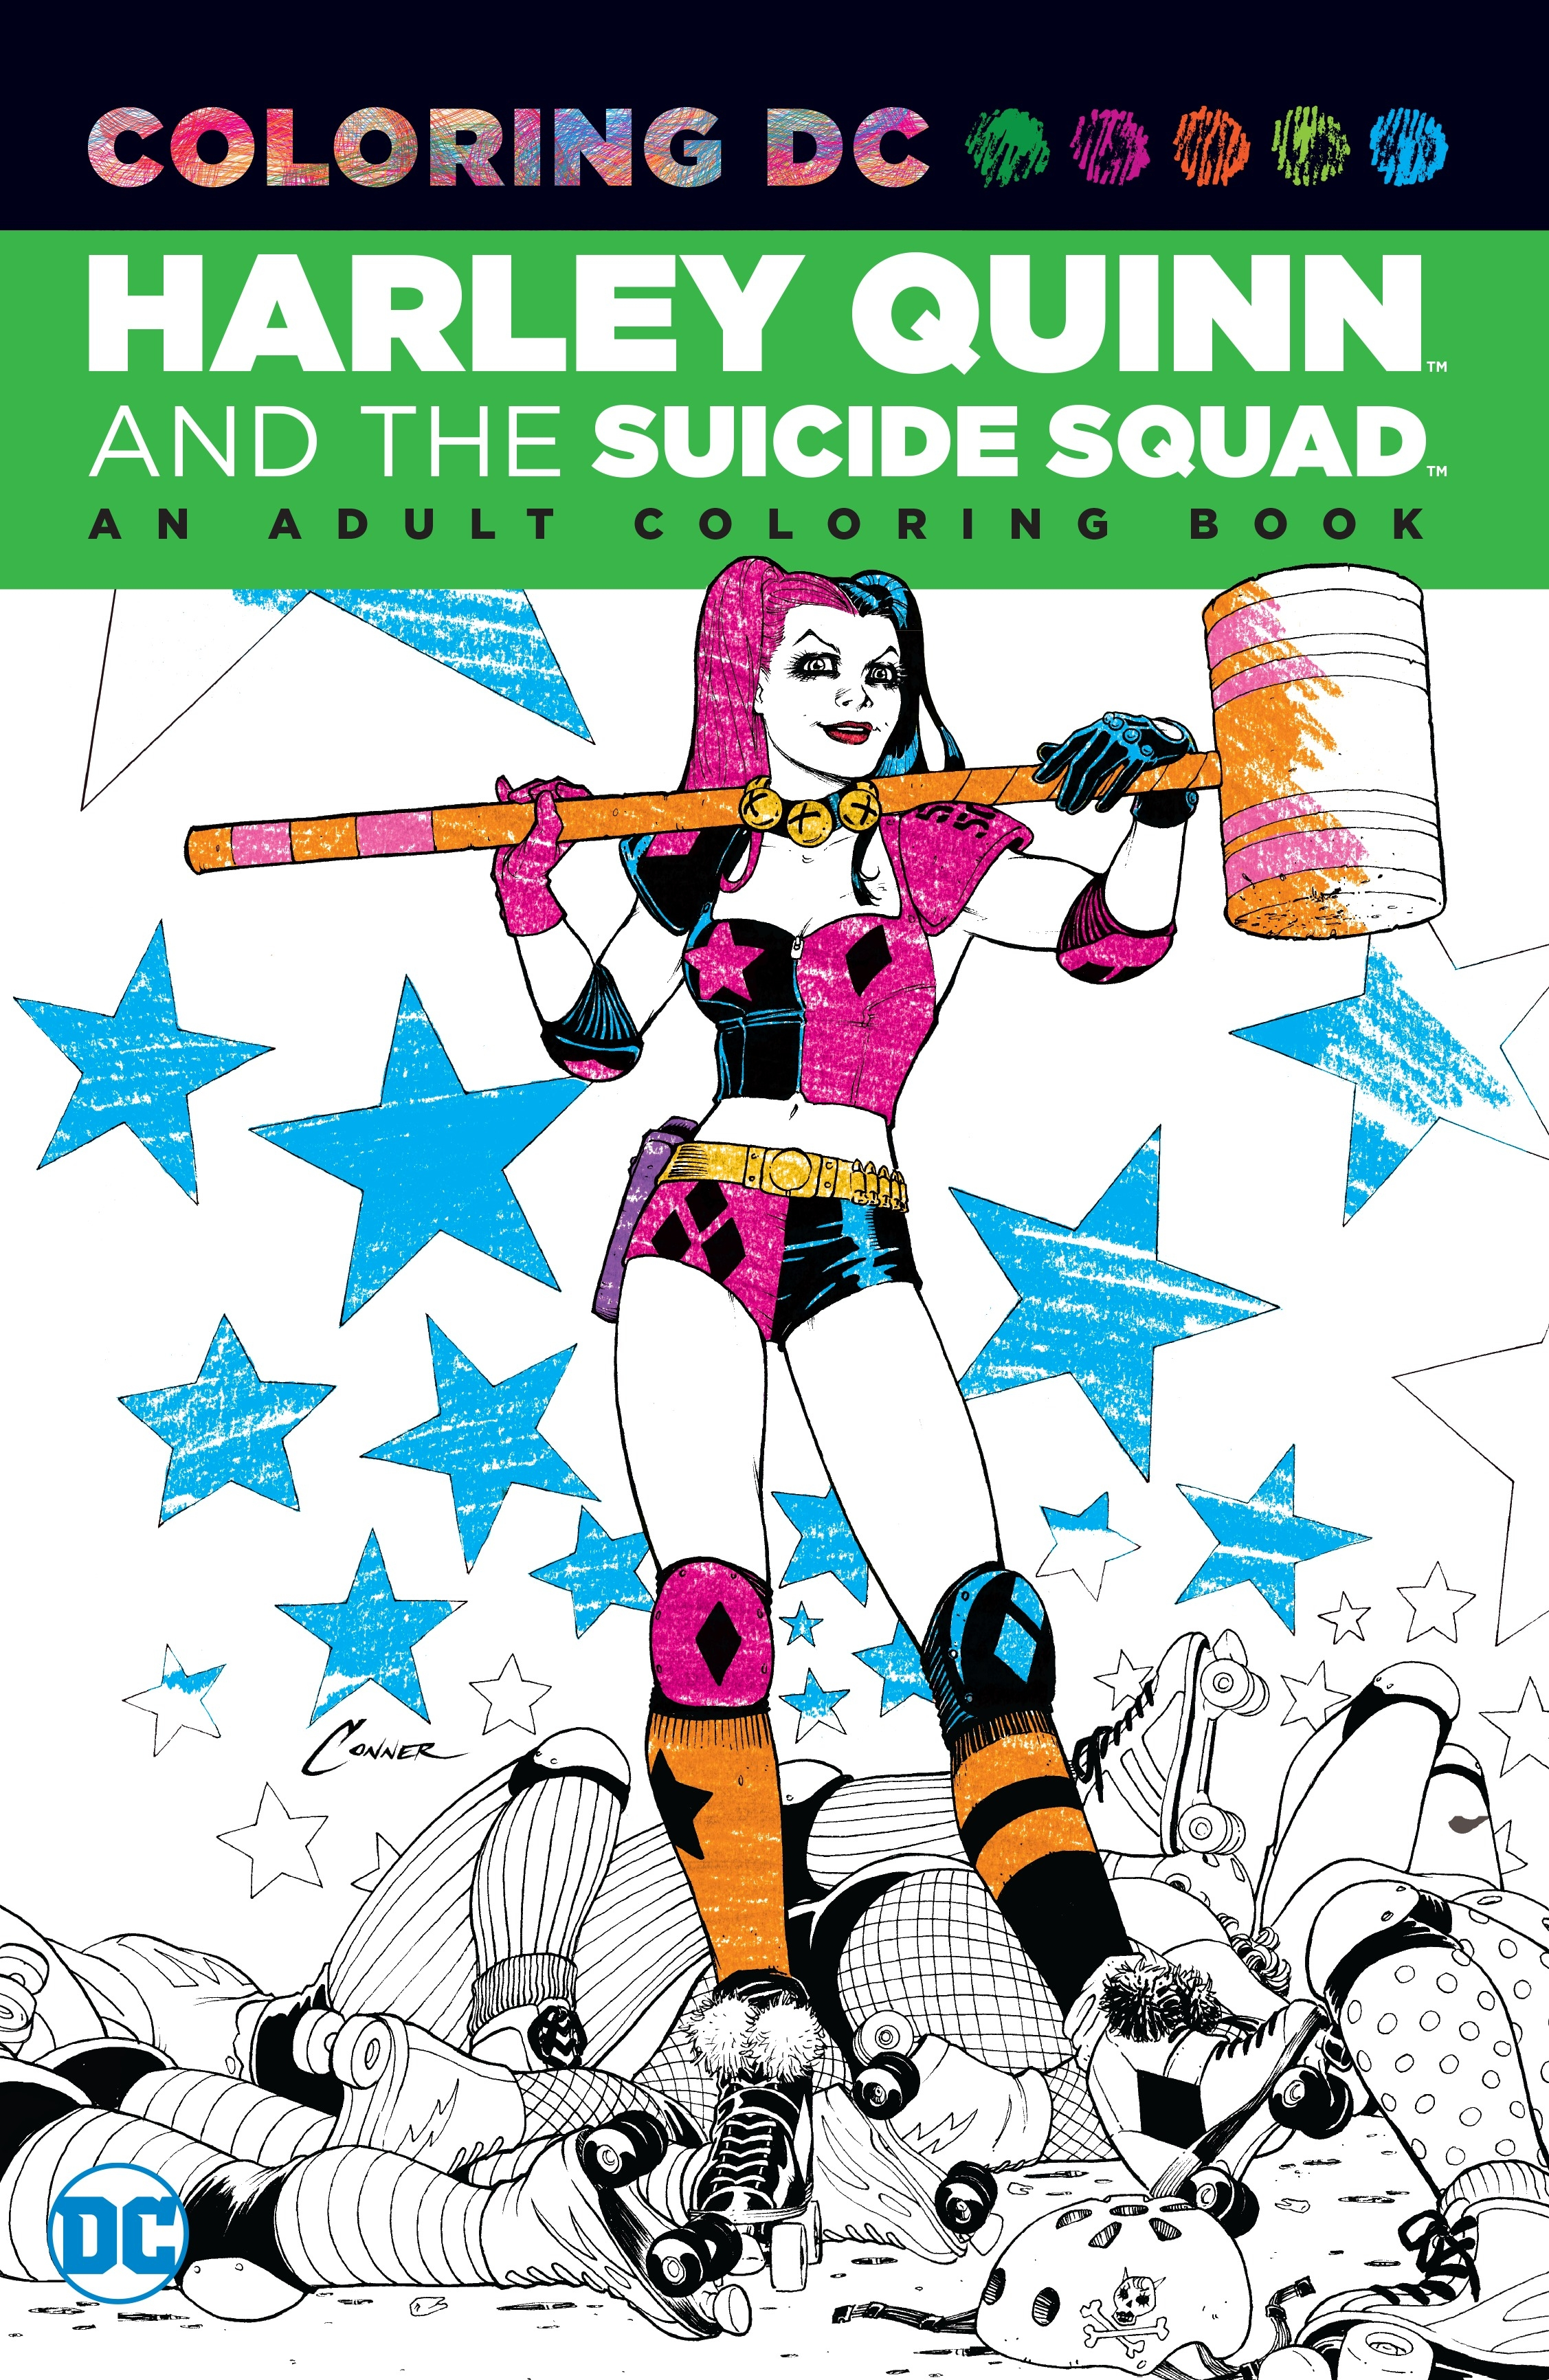 Coloring DCHarley Quinn & the Suicide Squad